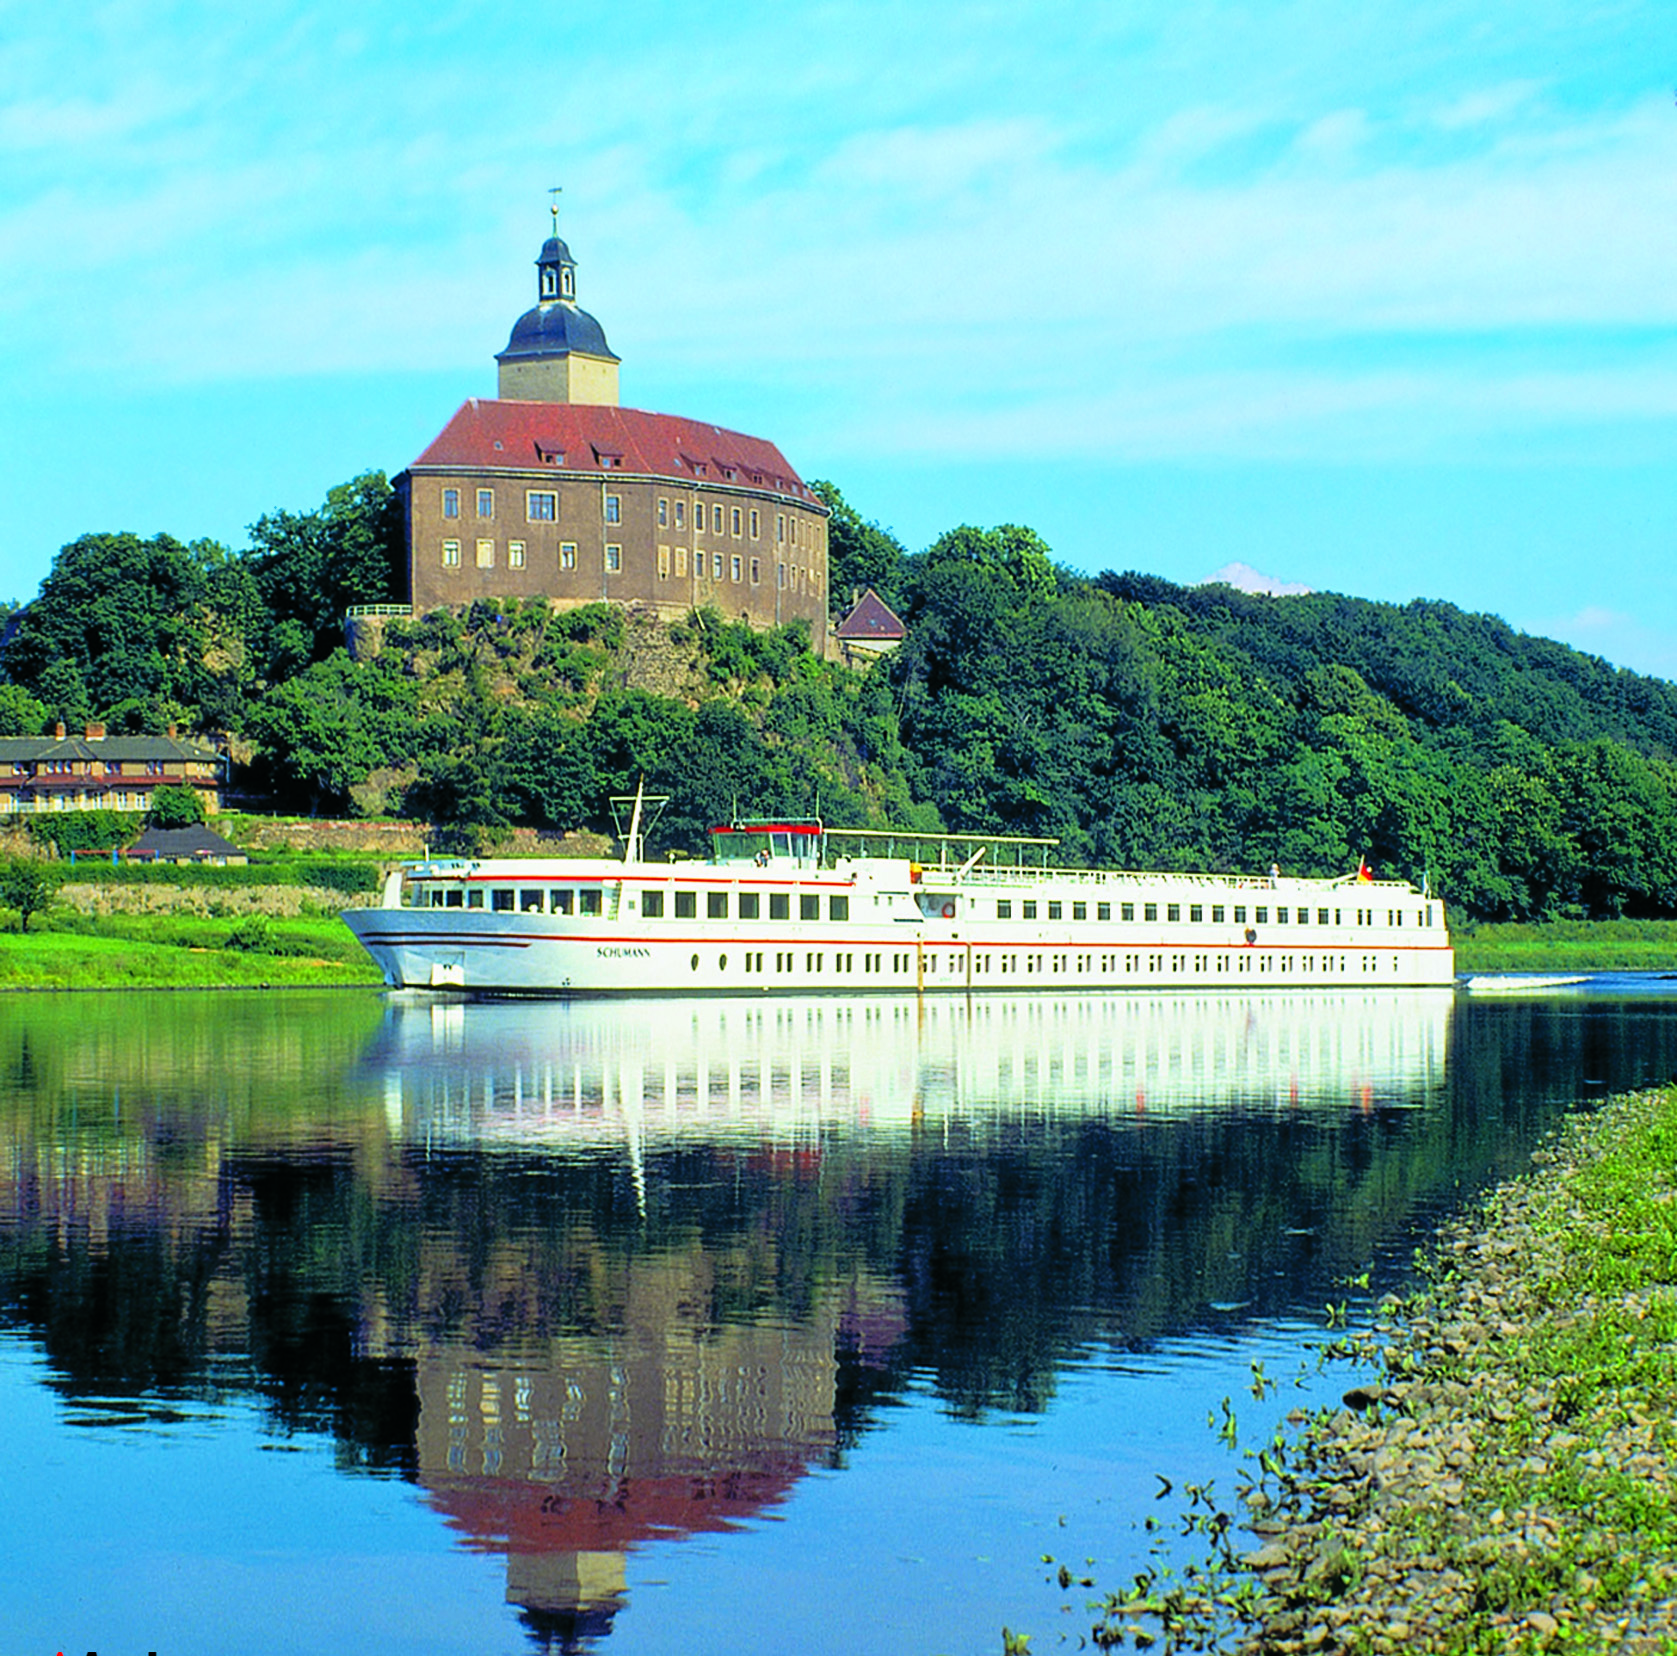 European River Cruise On The Elbe River